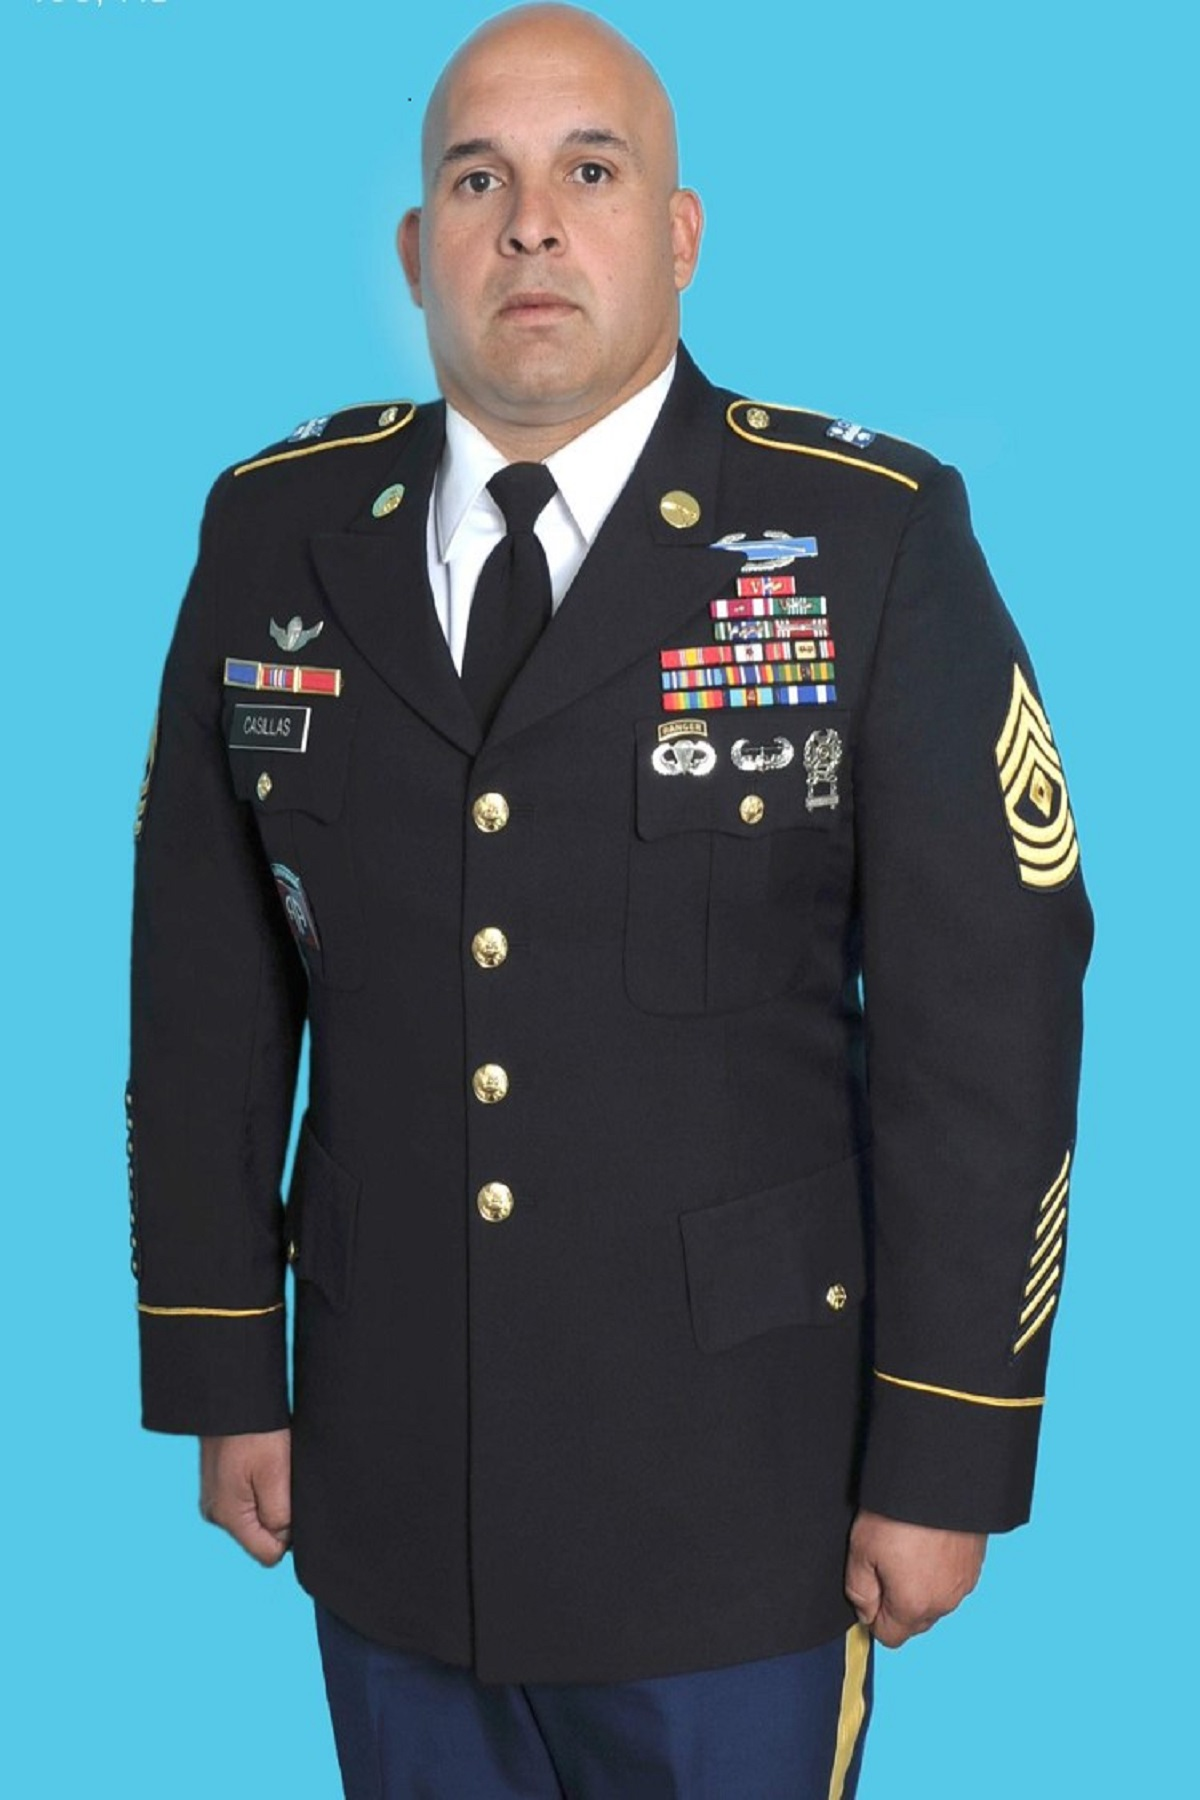 MSG Casillas, Military Science Instructor